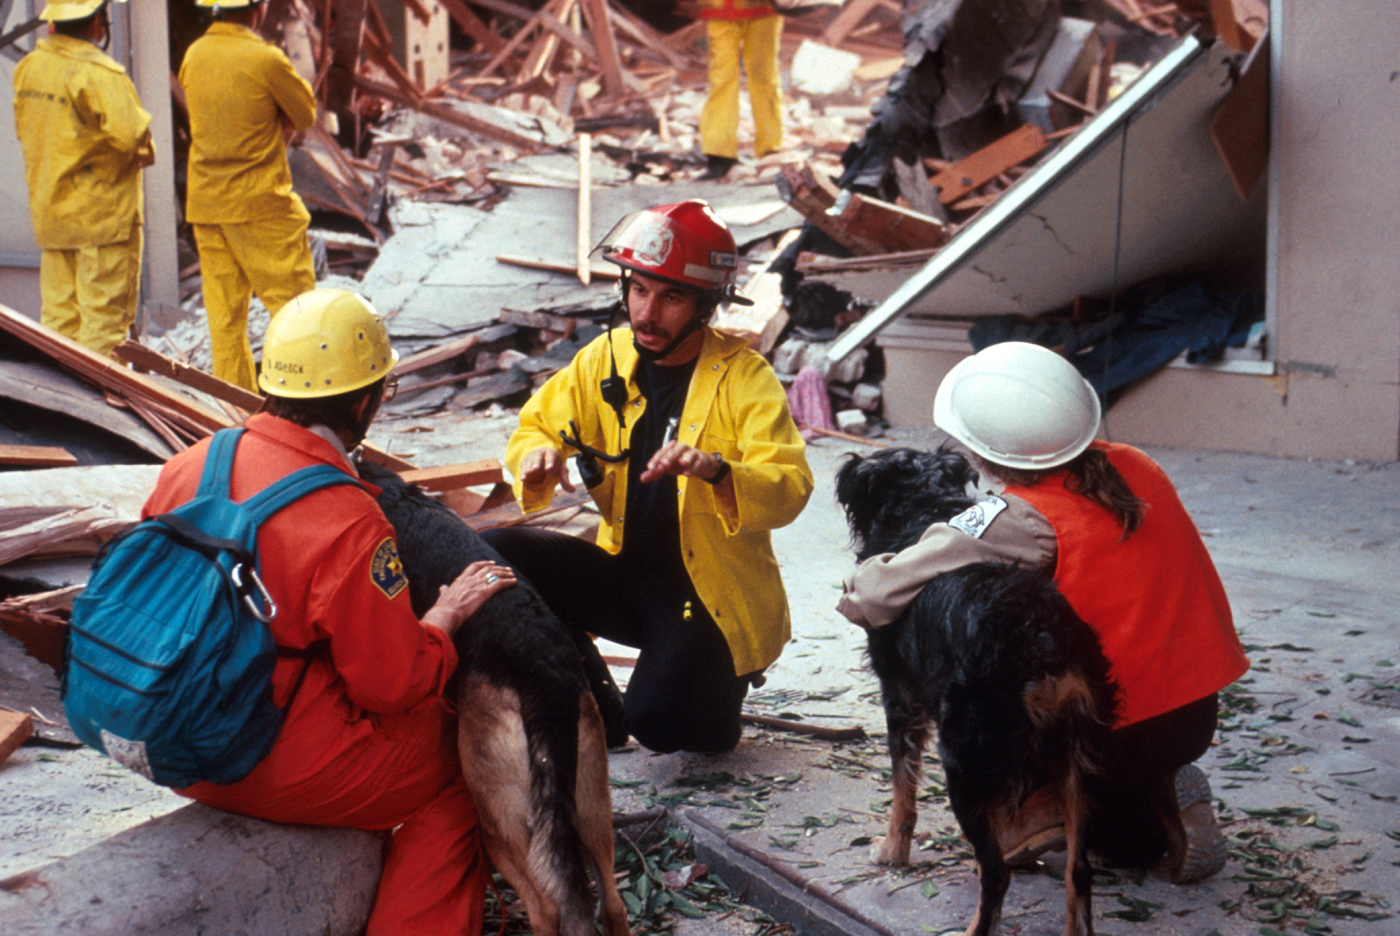 First responders search for victims at a collapsed department store in the Pacific Garden Mall in Santa Cruz. (U.S. Geological Survey)